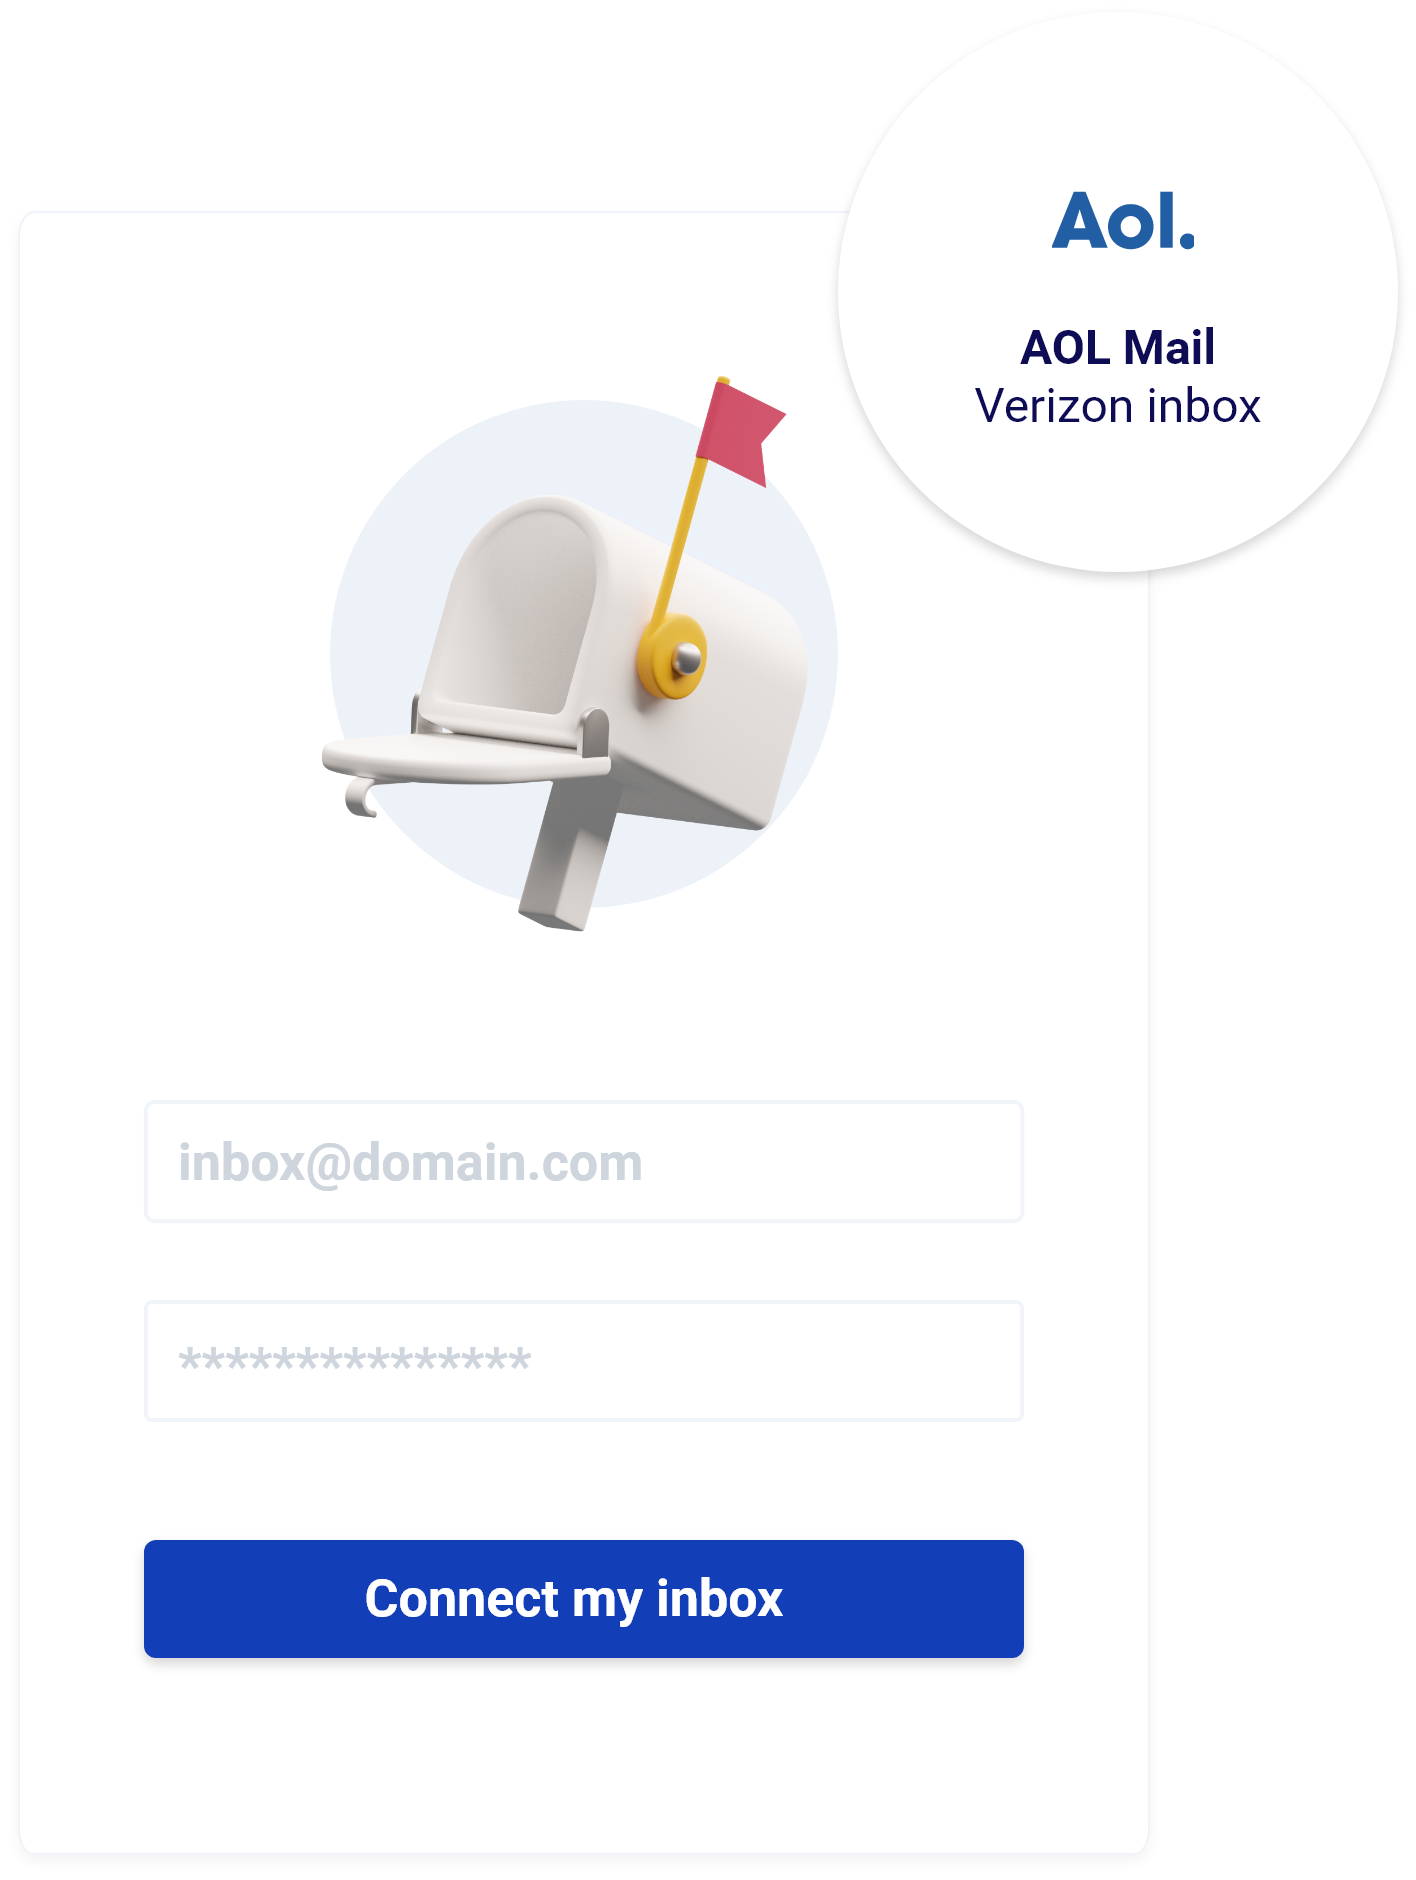 Warm-up your Aol inbox